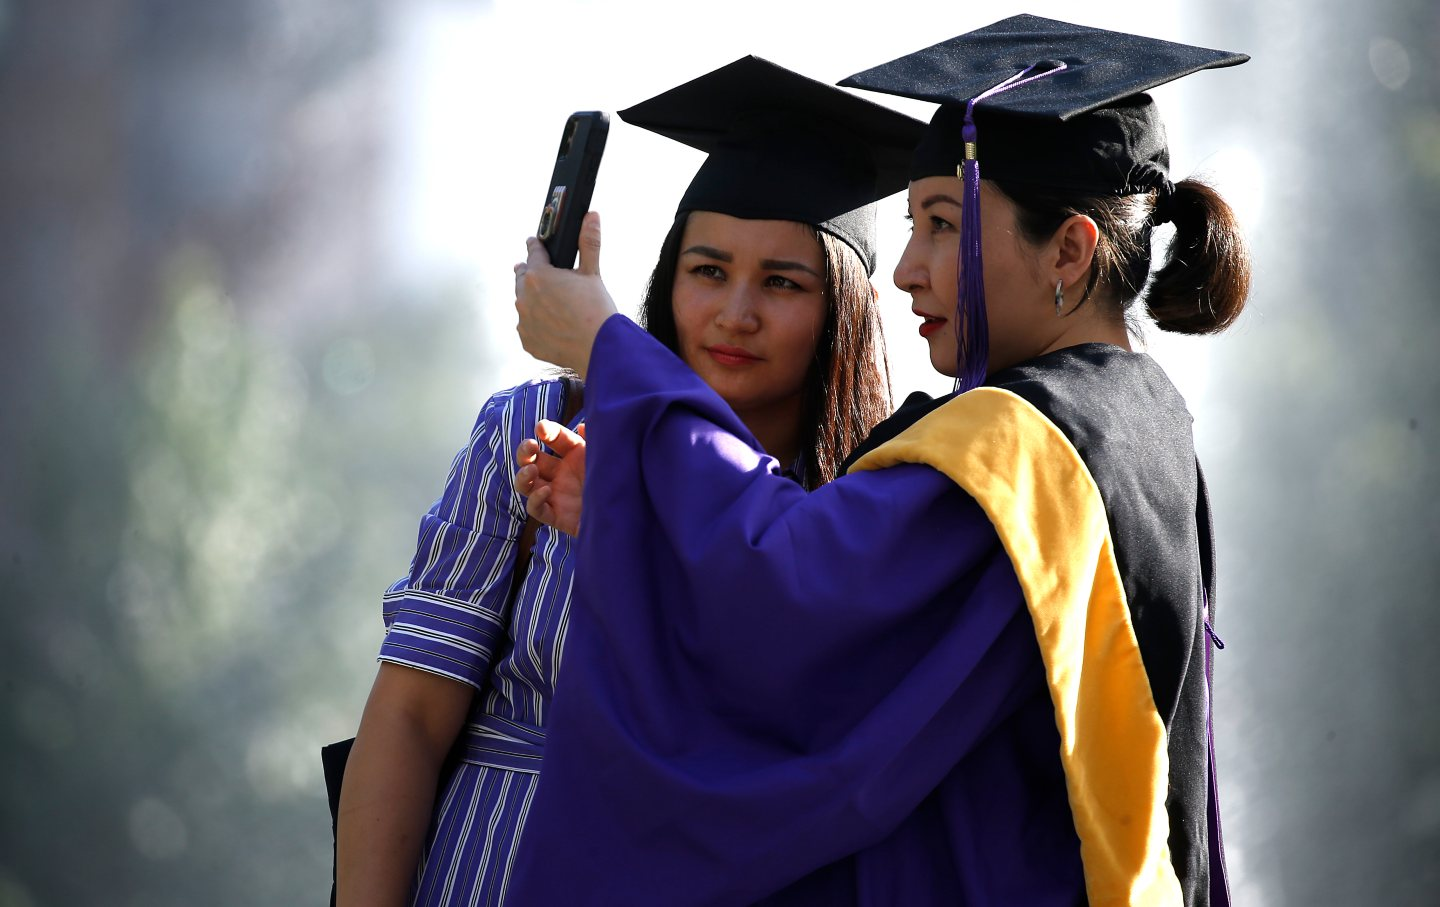 Two people pose for graduation photos